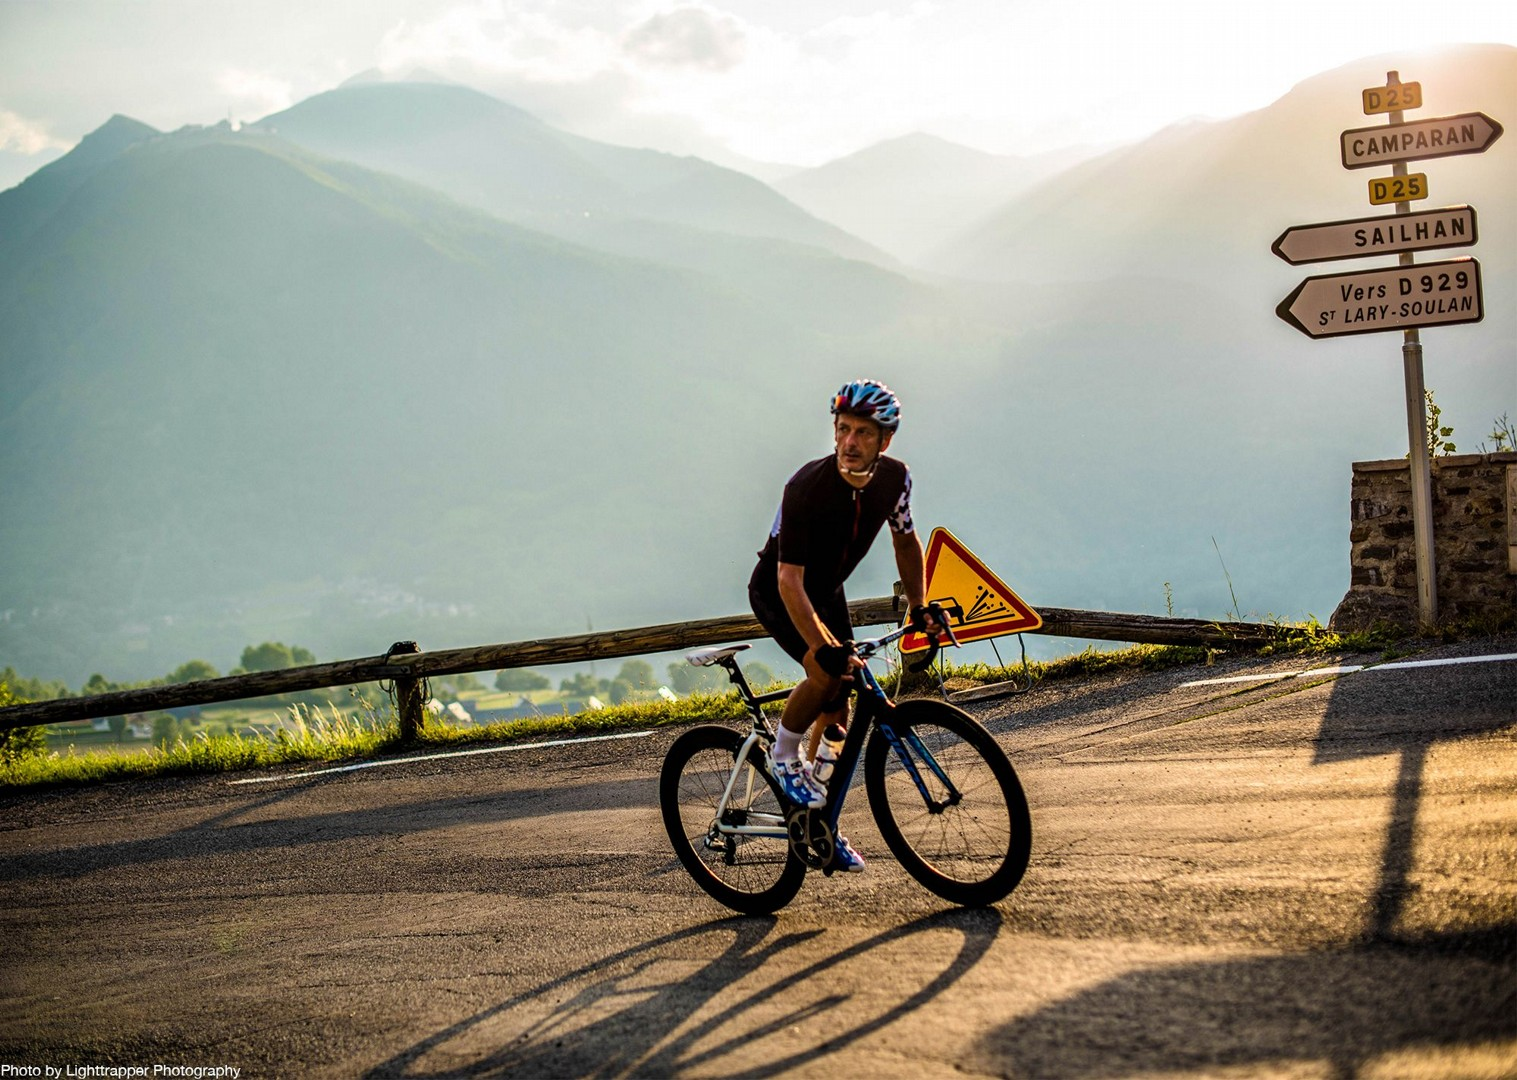 camparan-and-sailhan-road-cycling-holiday-pyrenees-france.jpg - France - Trans Pyrenees Challenge - Guided Road Cycling Holiday - Road Cycling